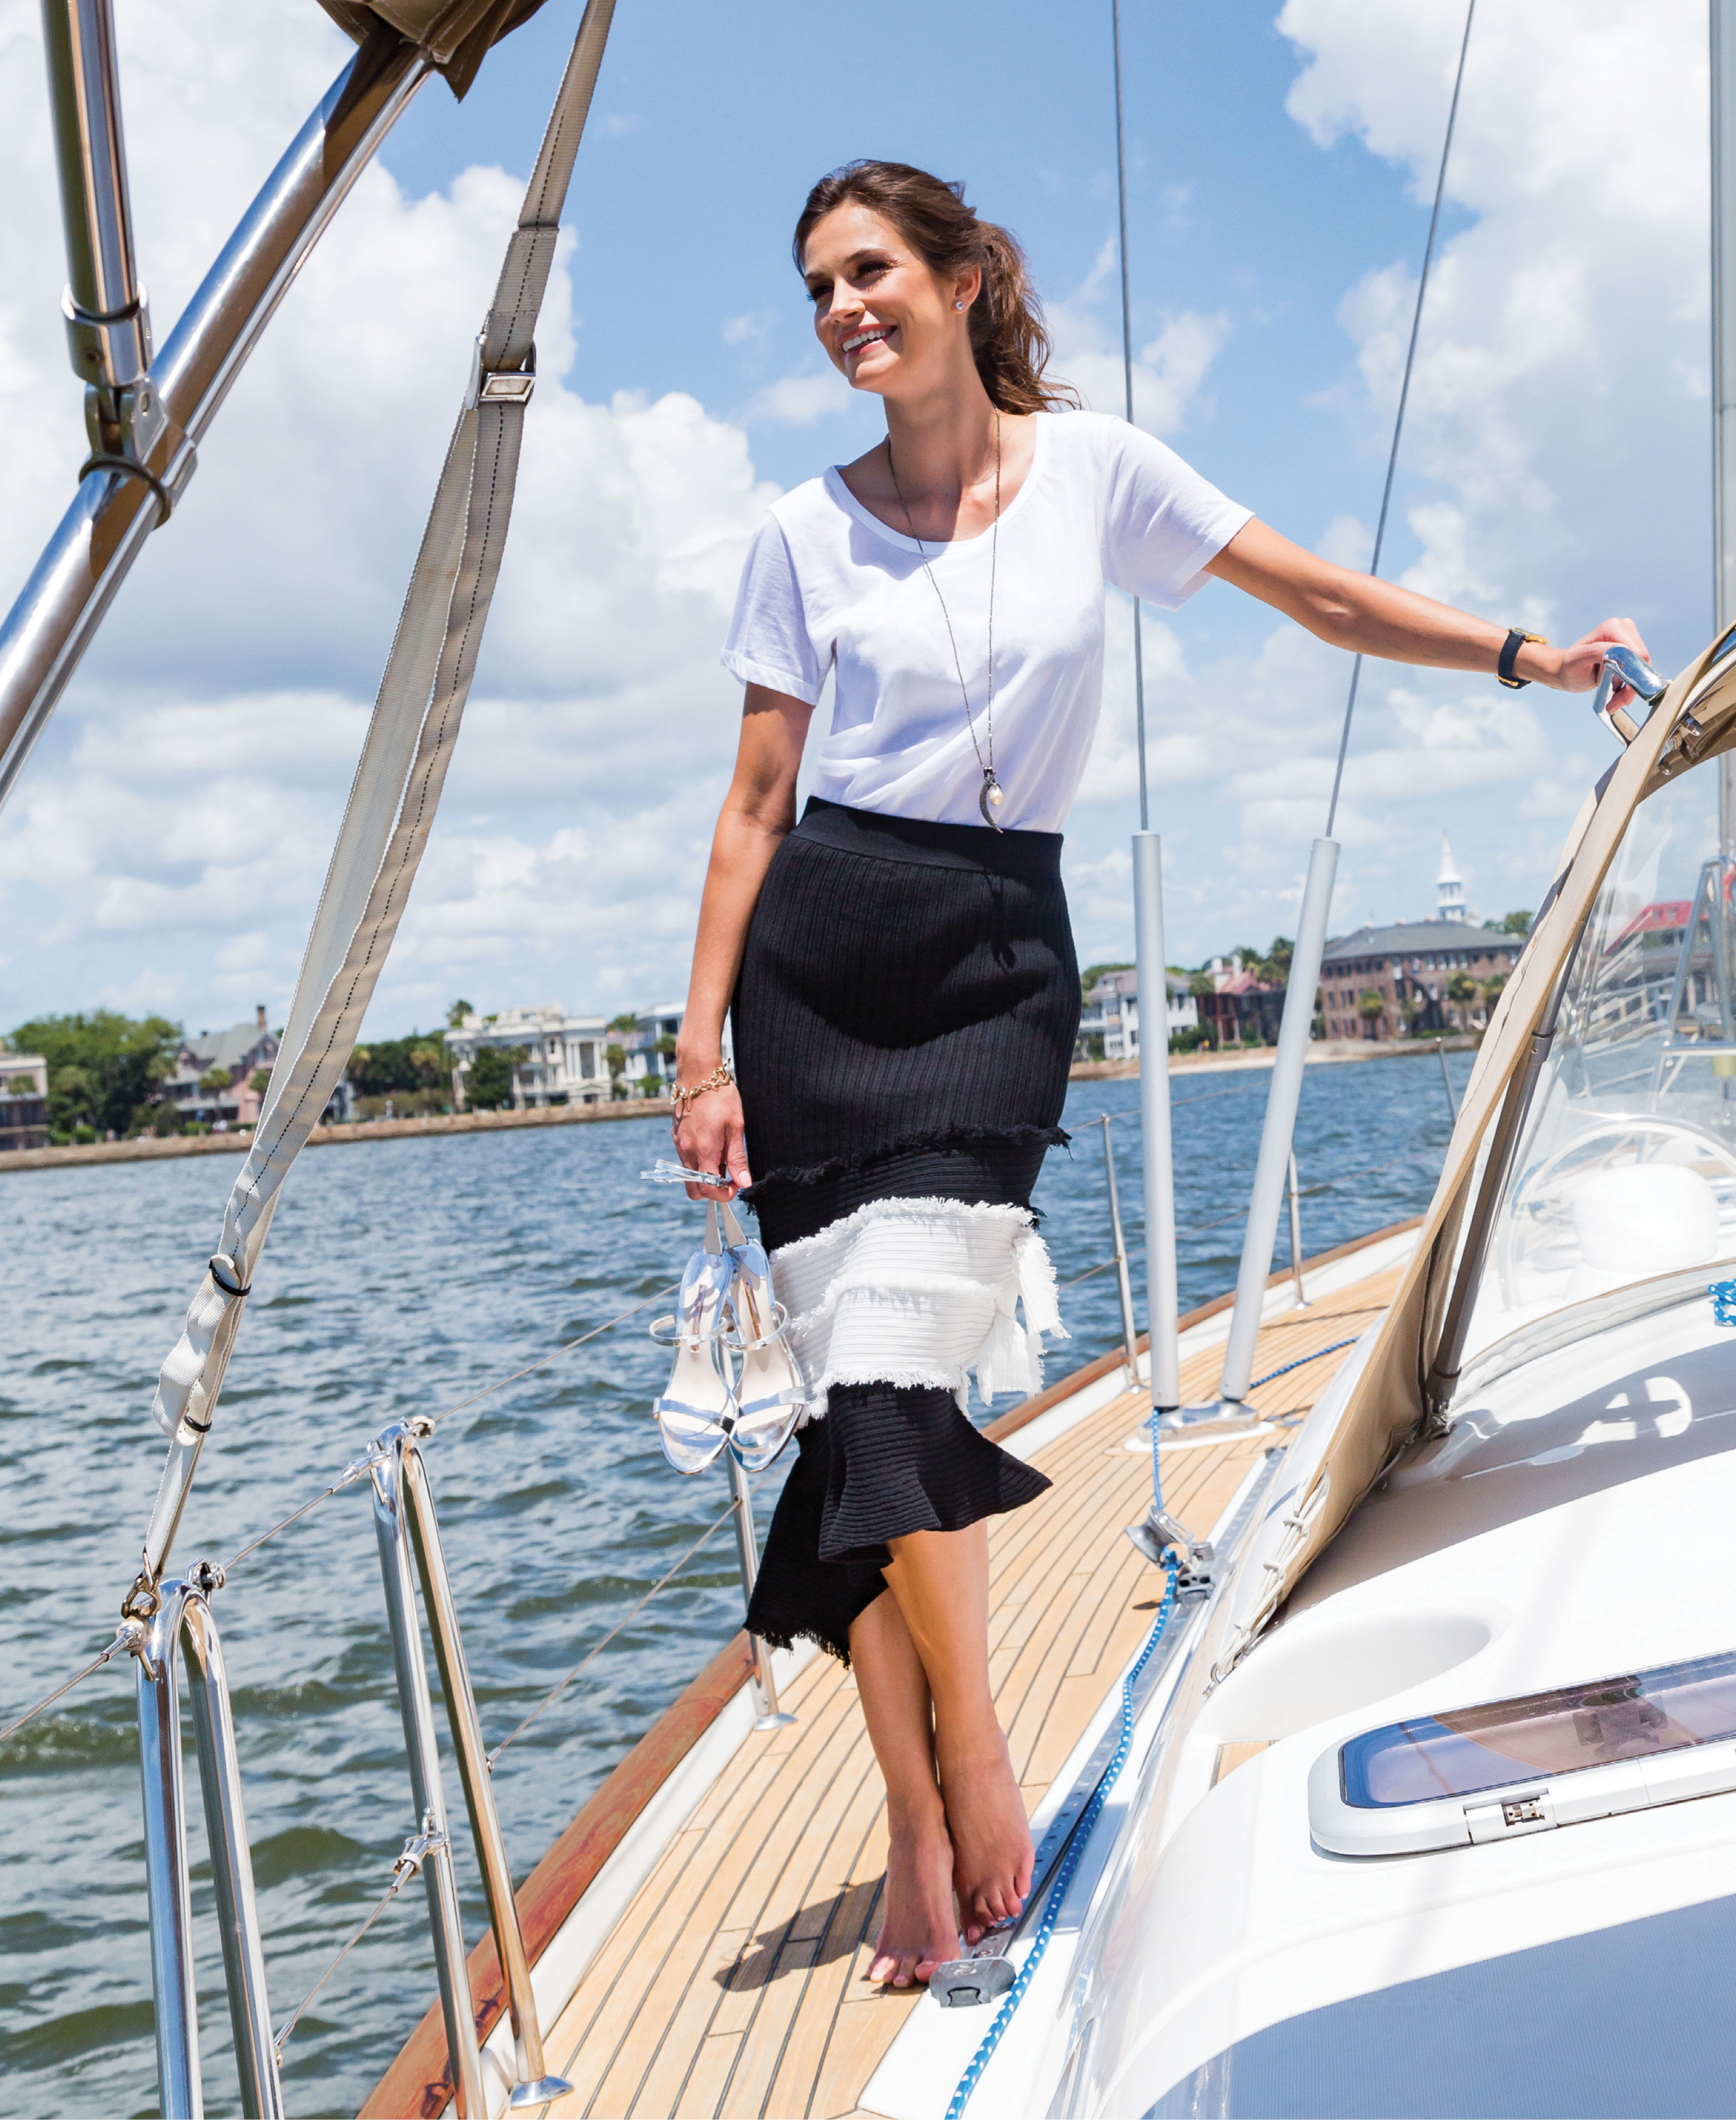 """Majestic Filatures short sleeve top in white, $120 at Gwynn's of Mount Pleasant; Jonathan Simkhai """"Ribbed Bandage Midi Skirt,"""" $395 at Berlin's for Women; Sophia Webster metallic leather """"Rosalind Crystal"""" sandal in """"silver,"""" $495 at Gwynn's of Mount Pleasant and Shoes on King; Rebeka Hakimi 14K white-gold, topaz, and diamond earrings, $420 at Diamonds Direct; Forever Creations USA pavé diamonds and pearl on pyrite pendant necklace, $250 at Out of Hand; 14K yellow-gold link bracelet, $1,150 at Polly's Fine Jewelry; Berg + Betts """"The Classic"""" watch, $128 at Maris DeHart"""